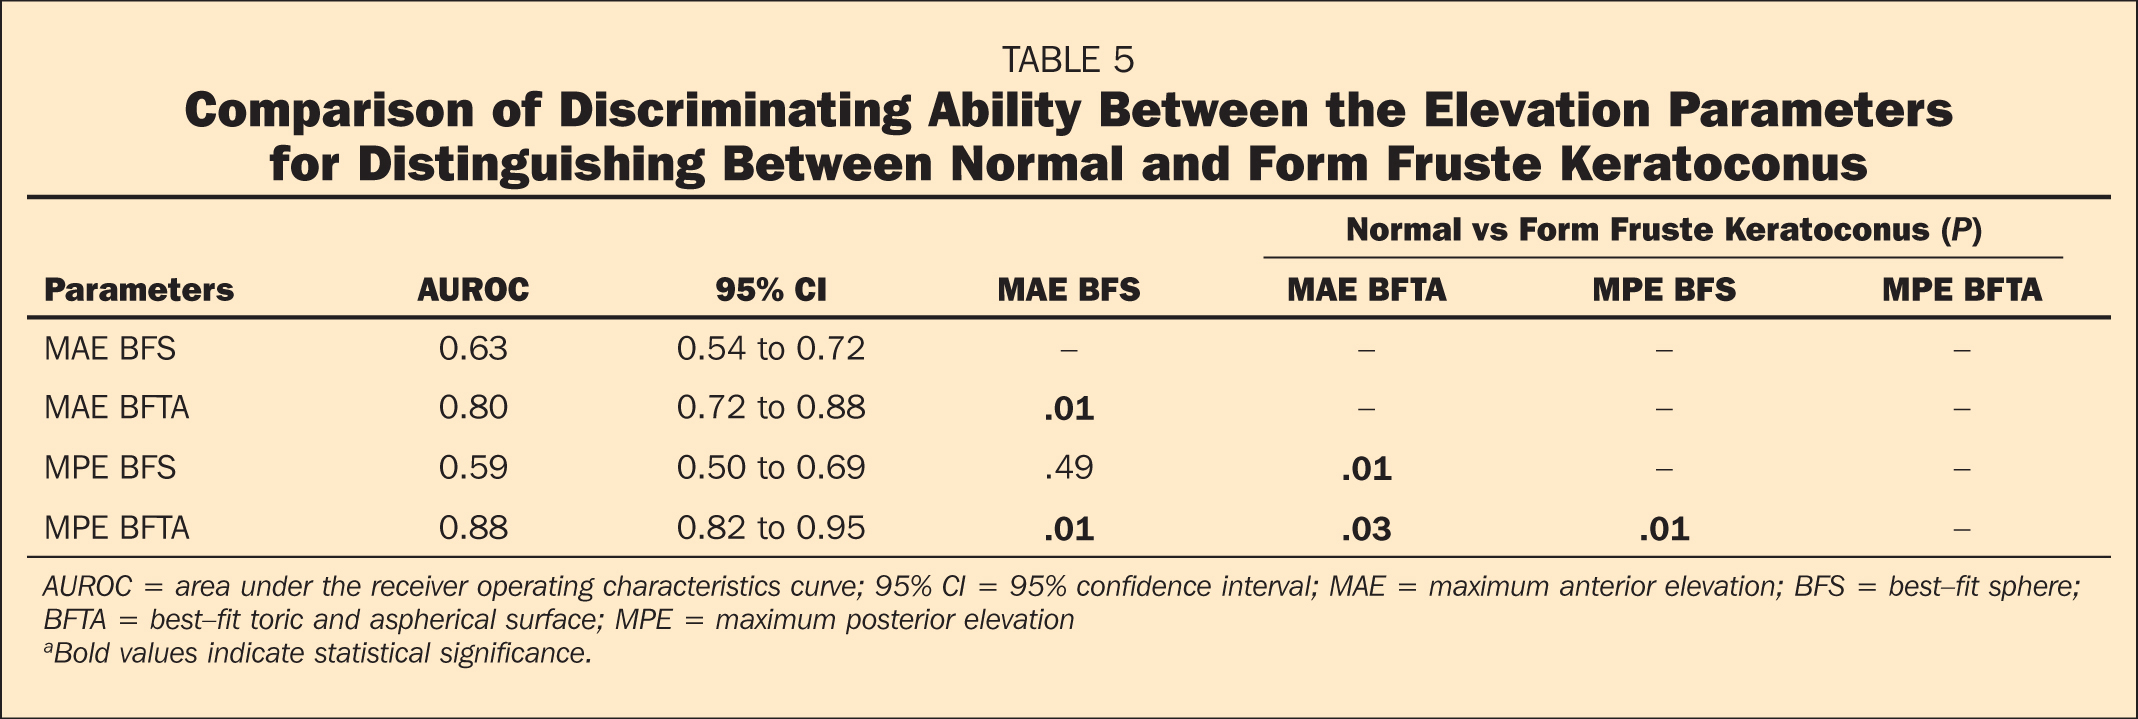 Comparison of Discriminating Ability Between the Elevation Parameters for Distinguishing Between Normal and Form Fruste Keratoconus